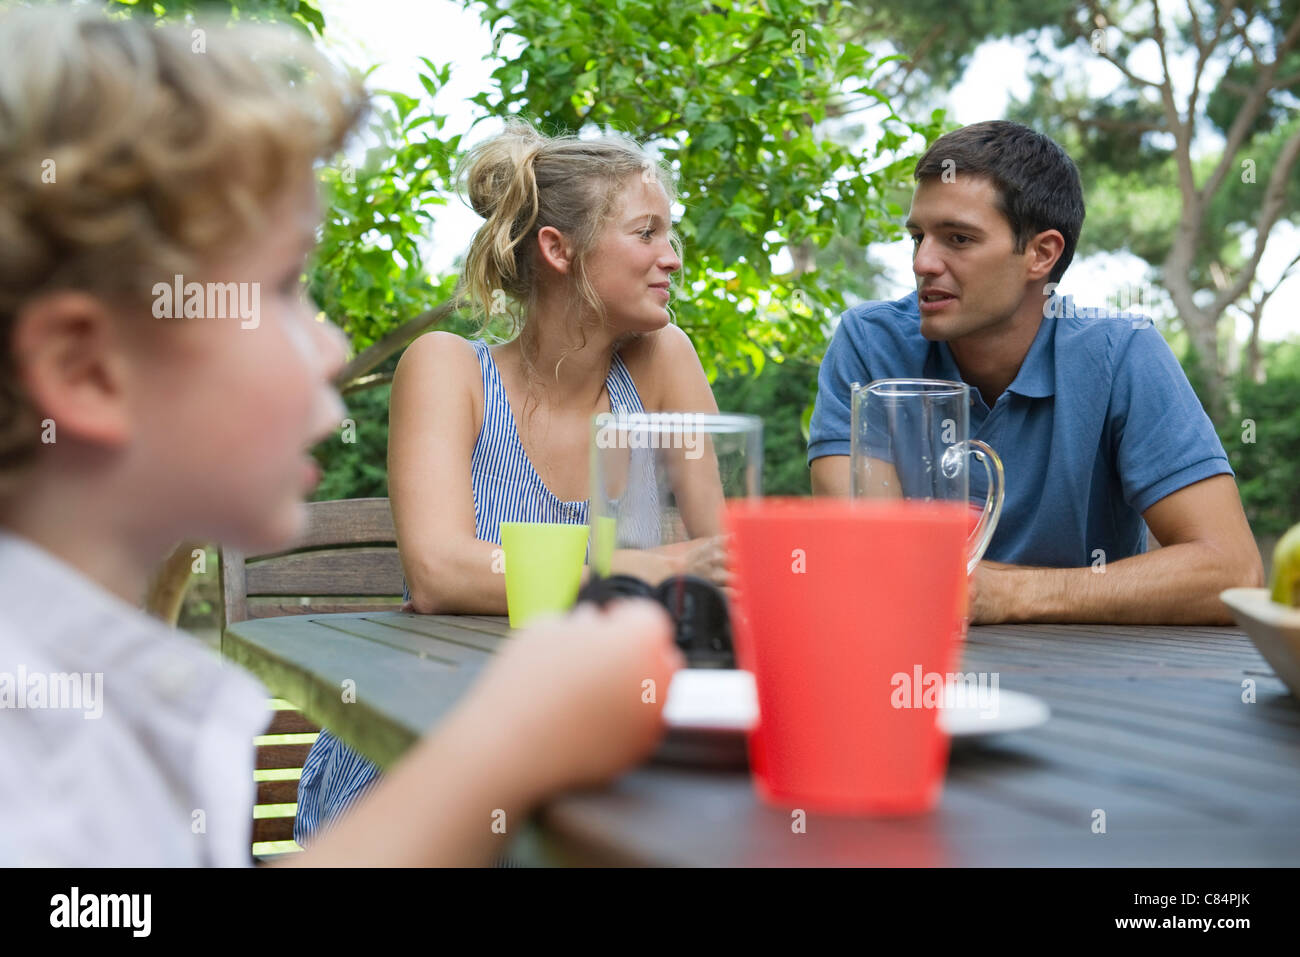 Family relaxing together at table outdoors - Stock Image